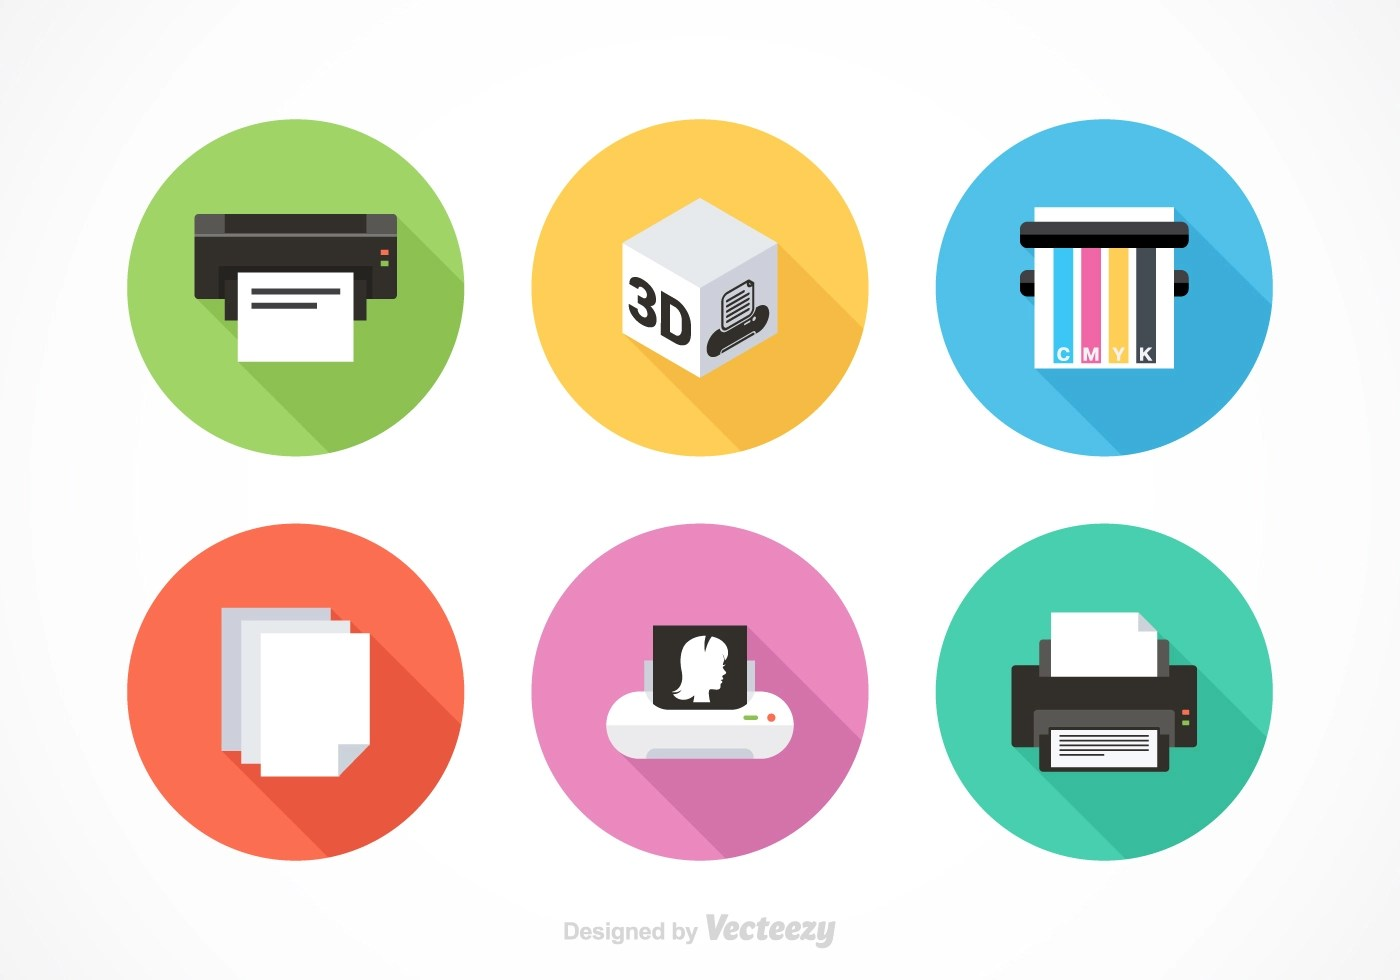 Printer Free Vector Art - (10187 Free Downloads)